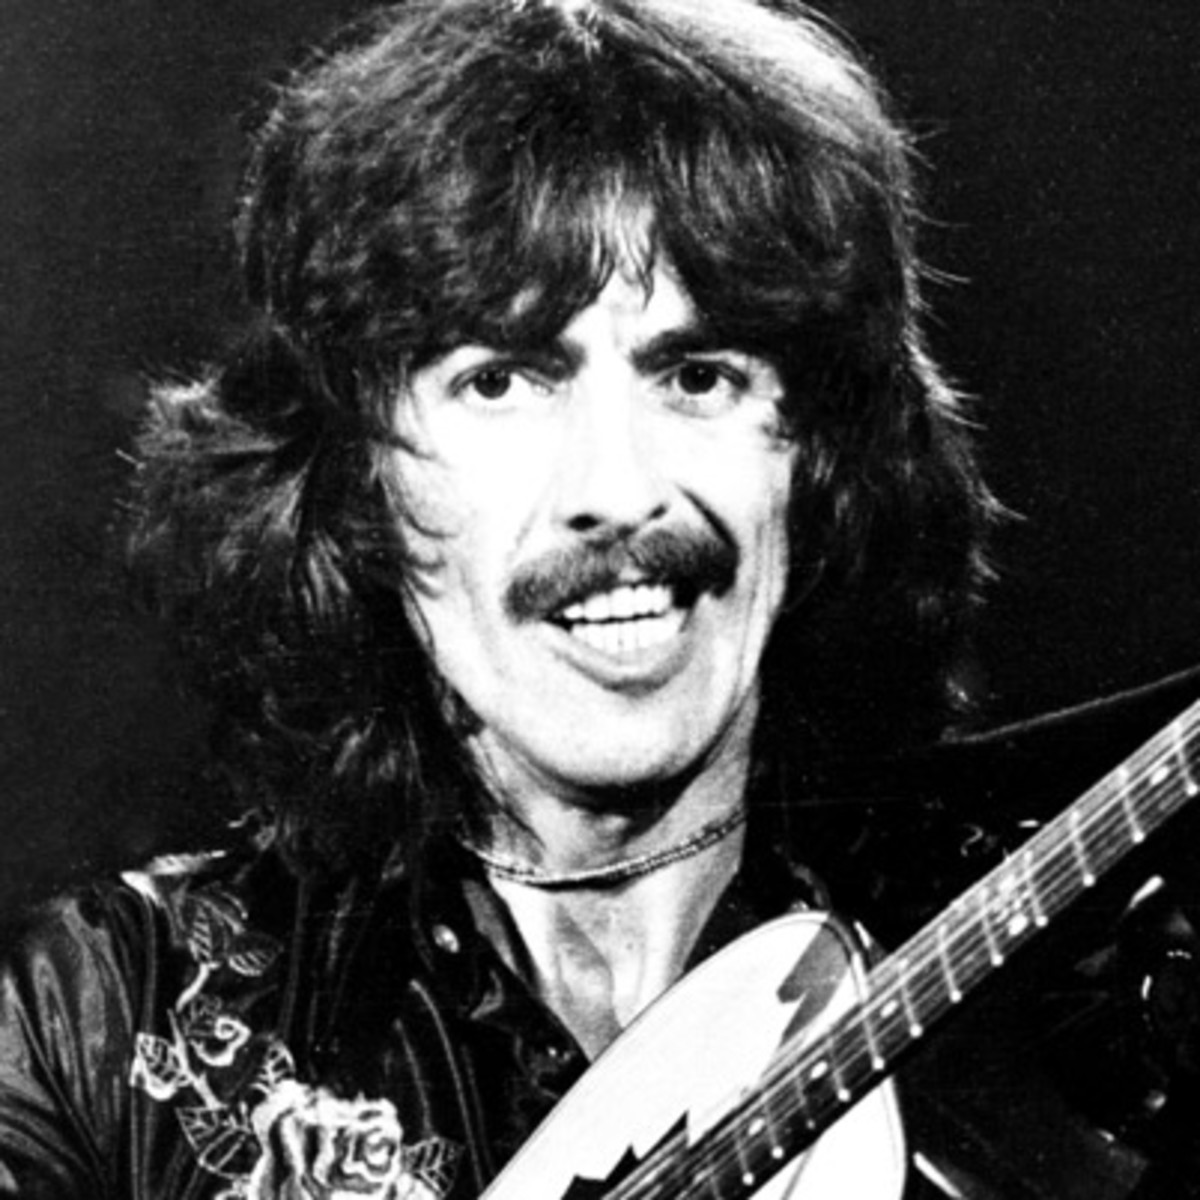 George Harrison Guitarist Musician Songwriter Singer Biography